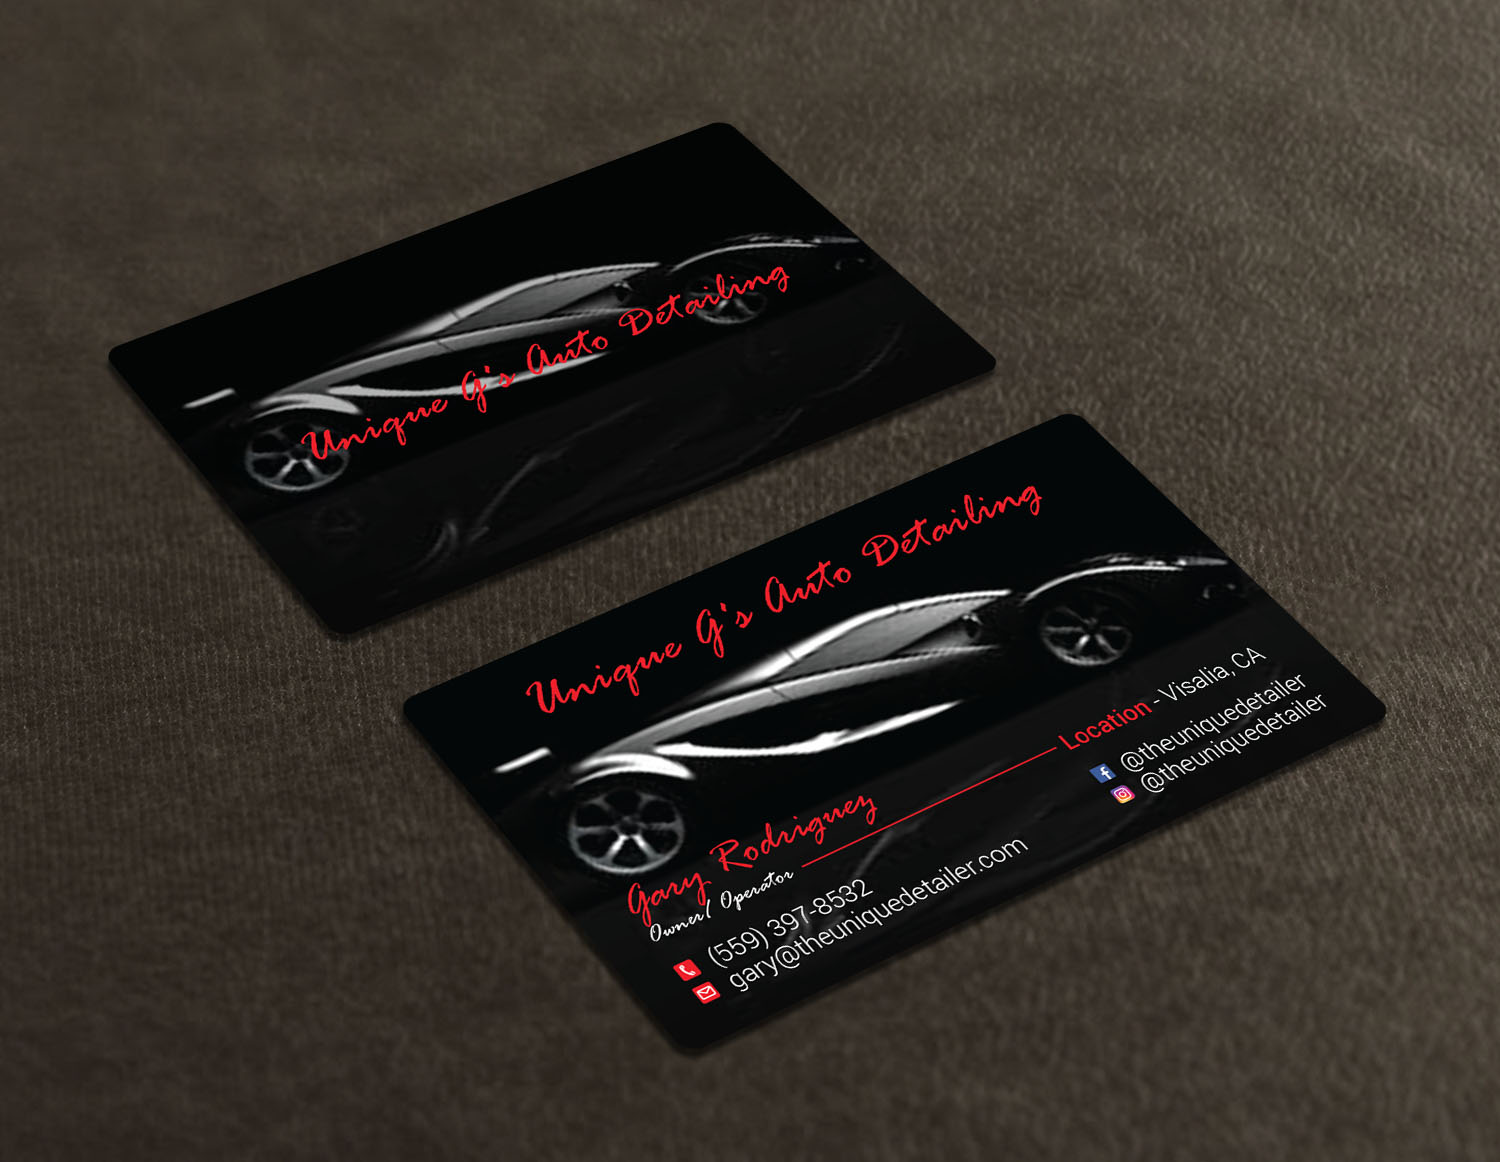 Modern professional automotive business card design for a company business card design by avanger000 for this project design 18039685 reheart Choice Image